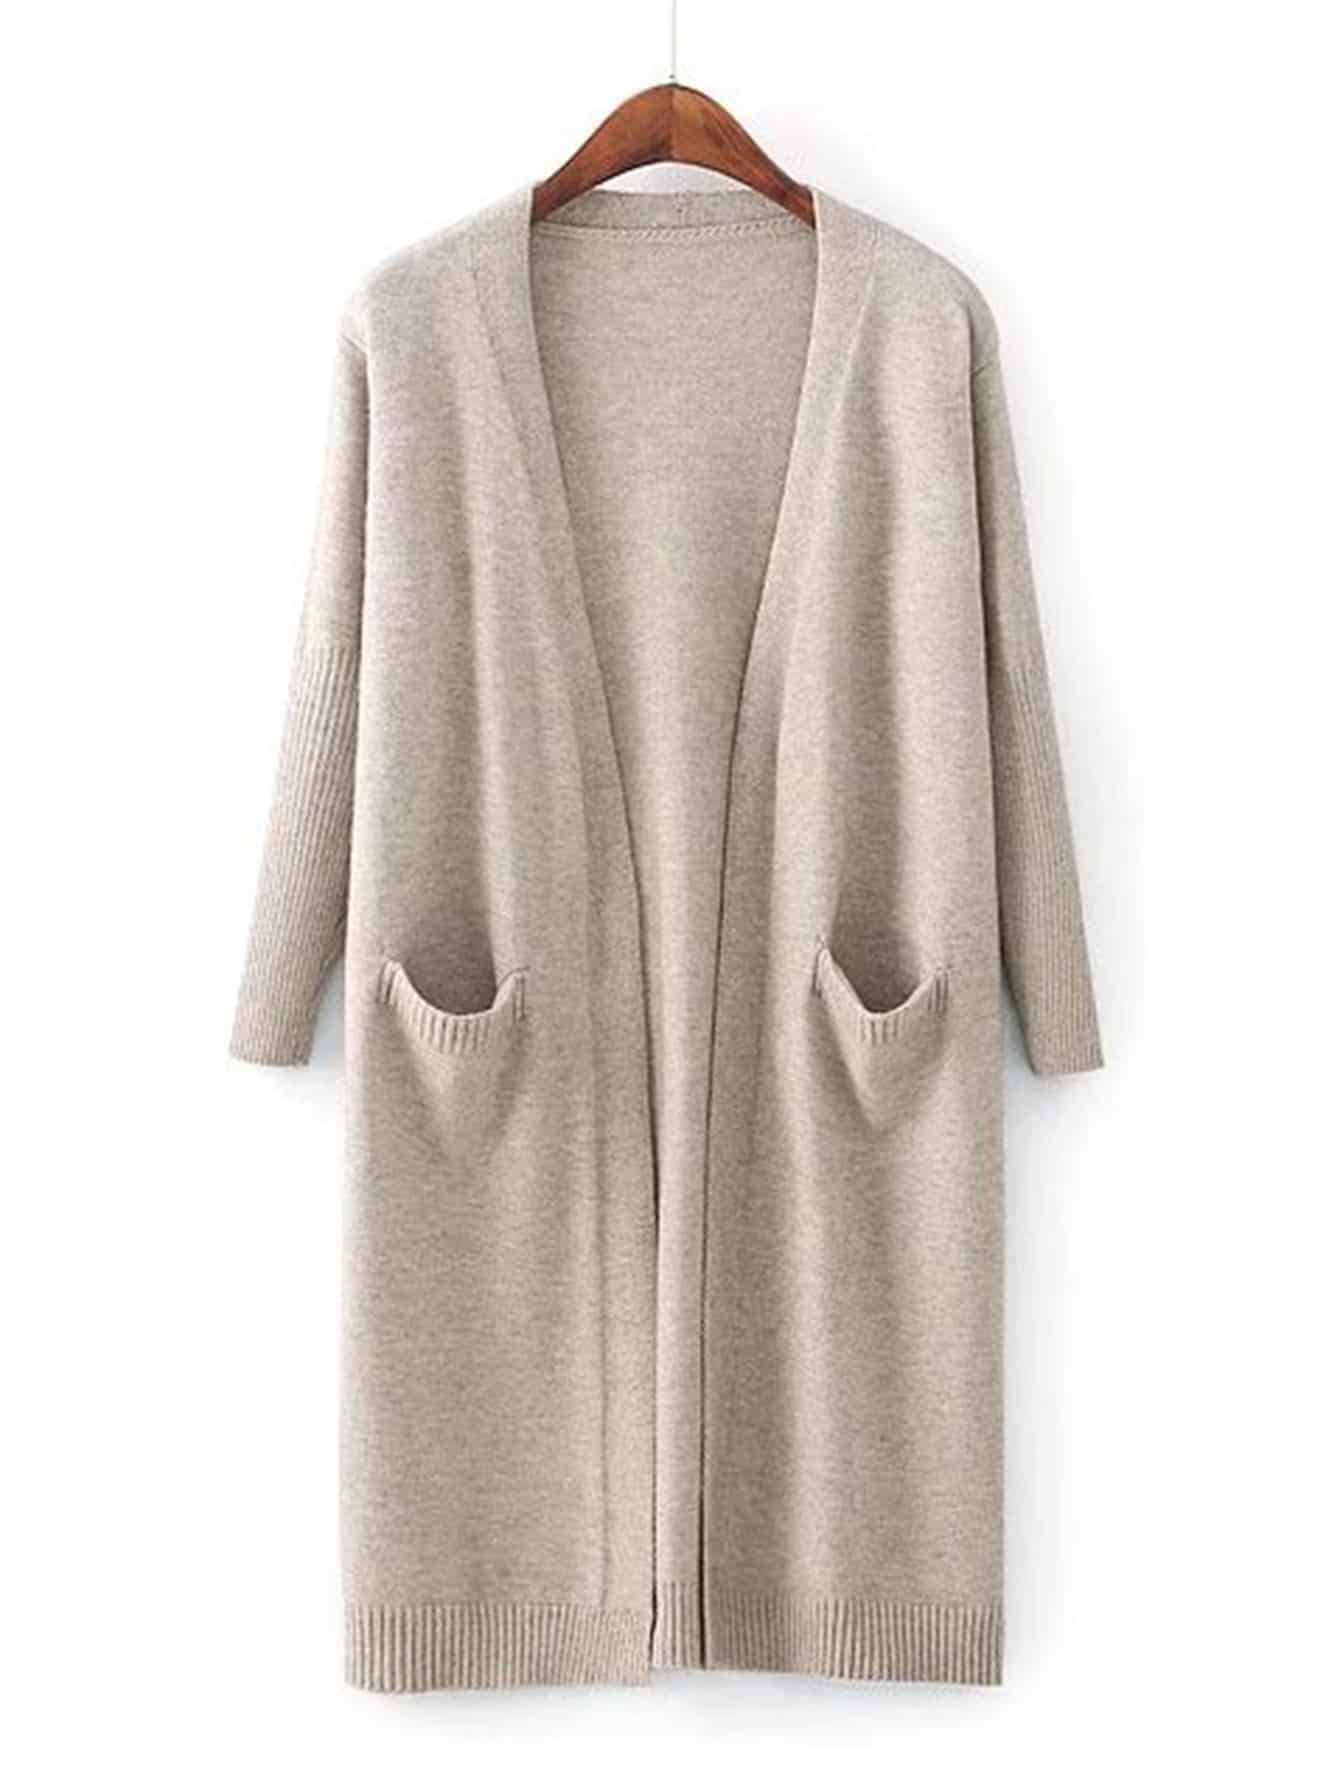 Front Pocket Ribbed Detail Longline Cardigan sweater170830201